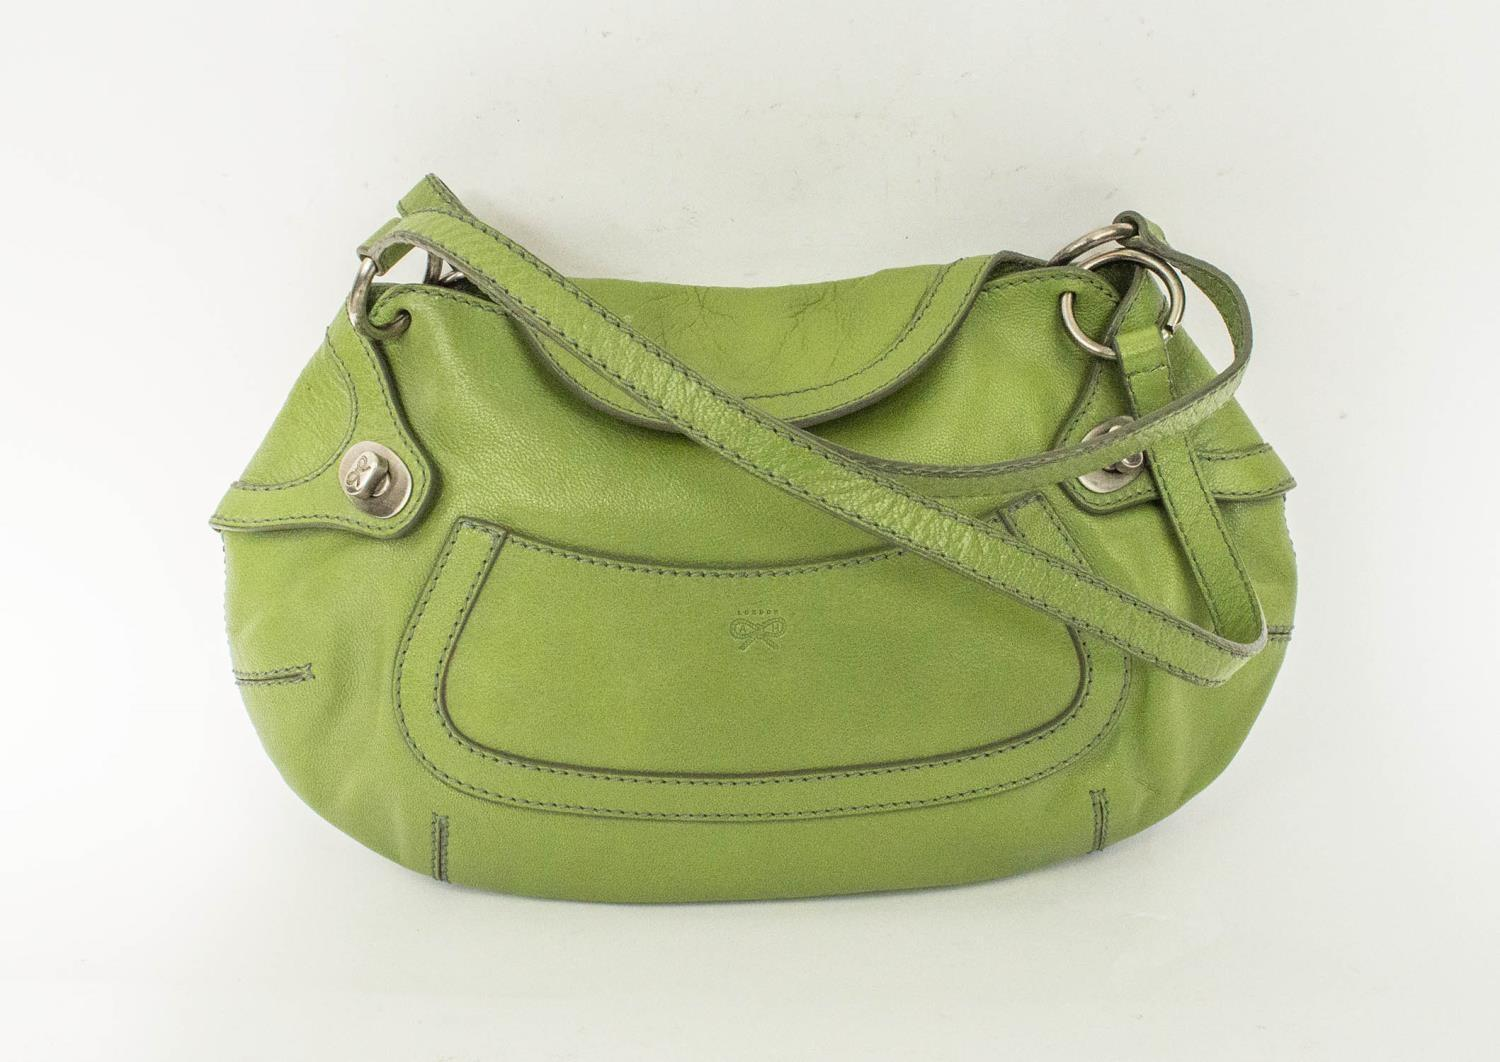 ANYA HINDMARCH SHOULDER BAG, leather with contrasting stitching, gun metal hardware, double top